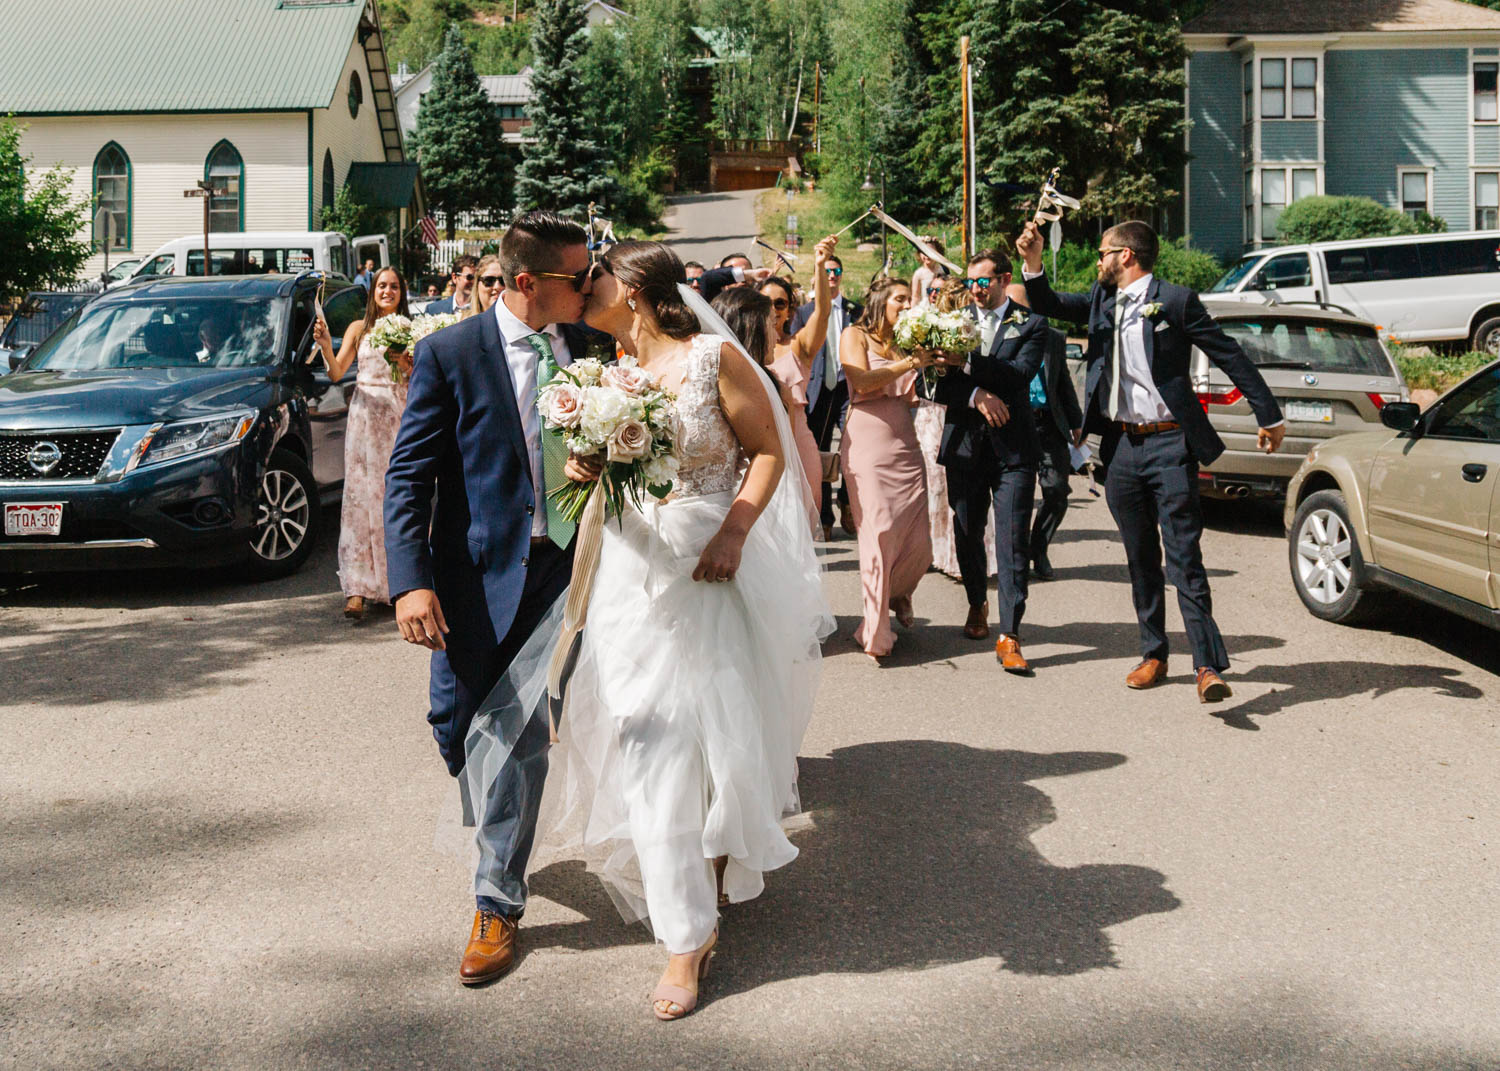 Bride and Groom leading wedding parade through town